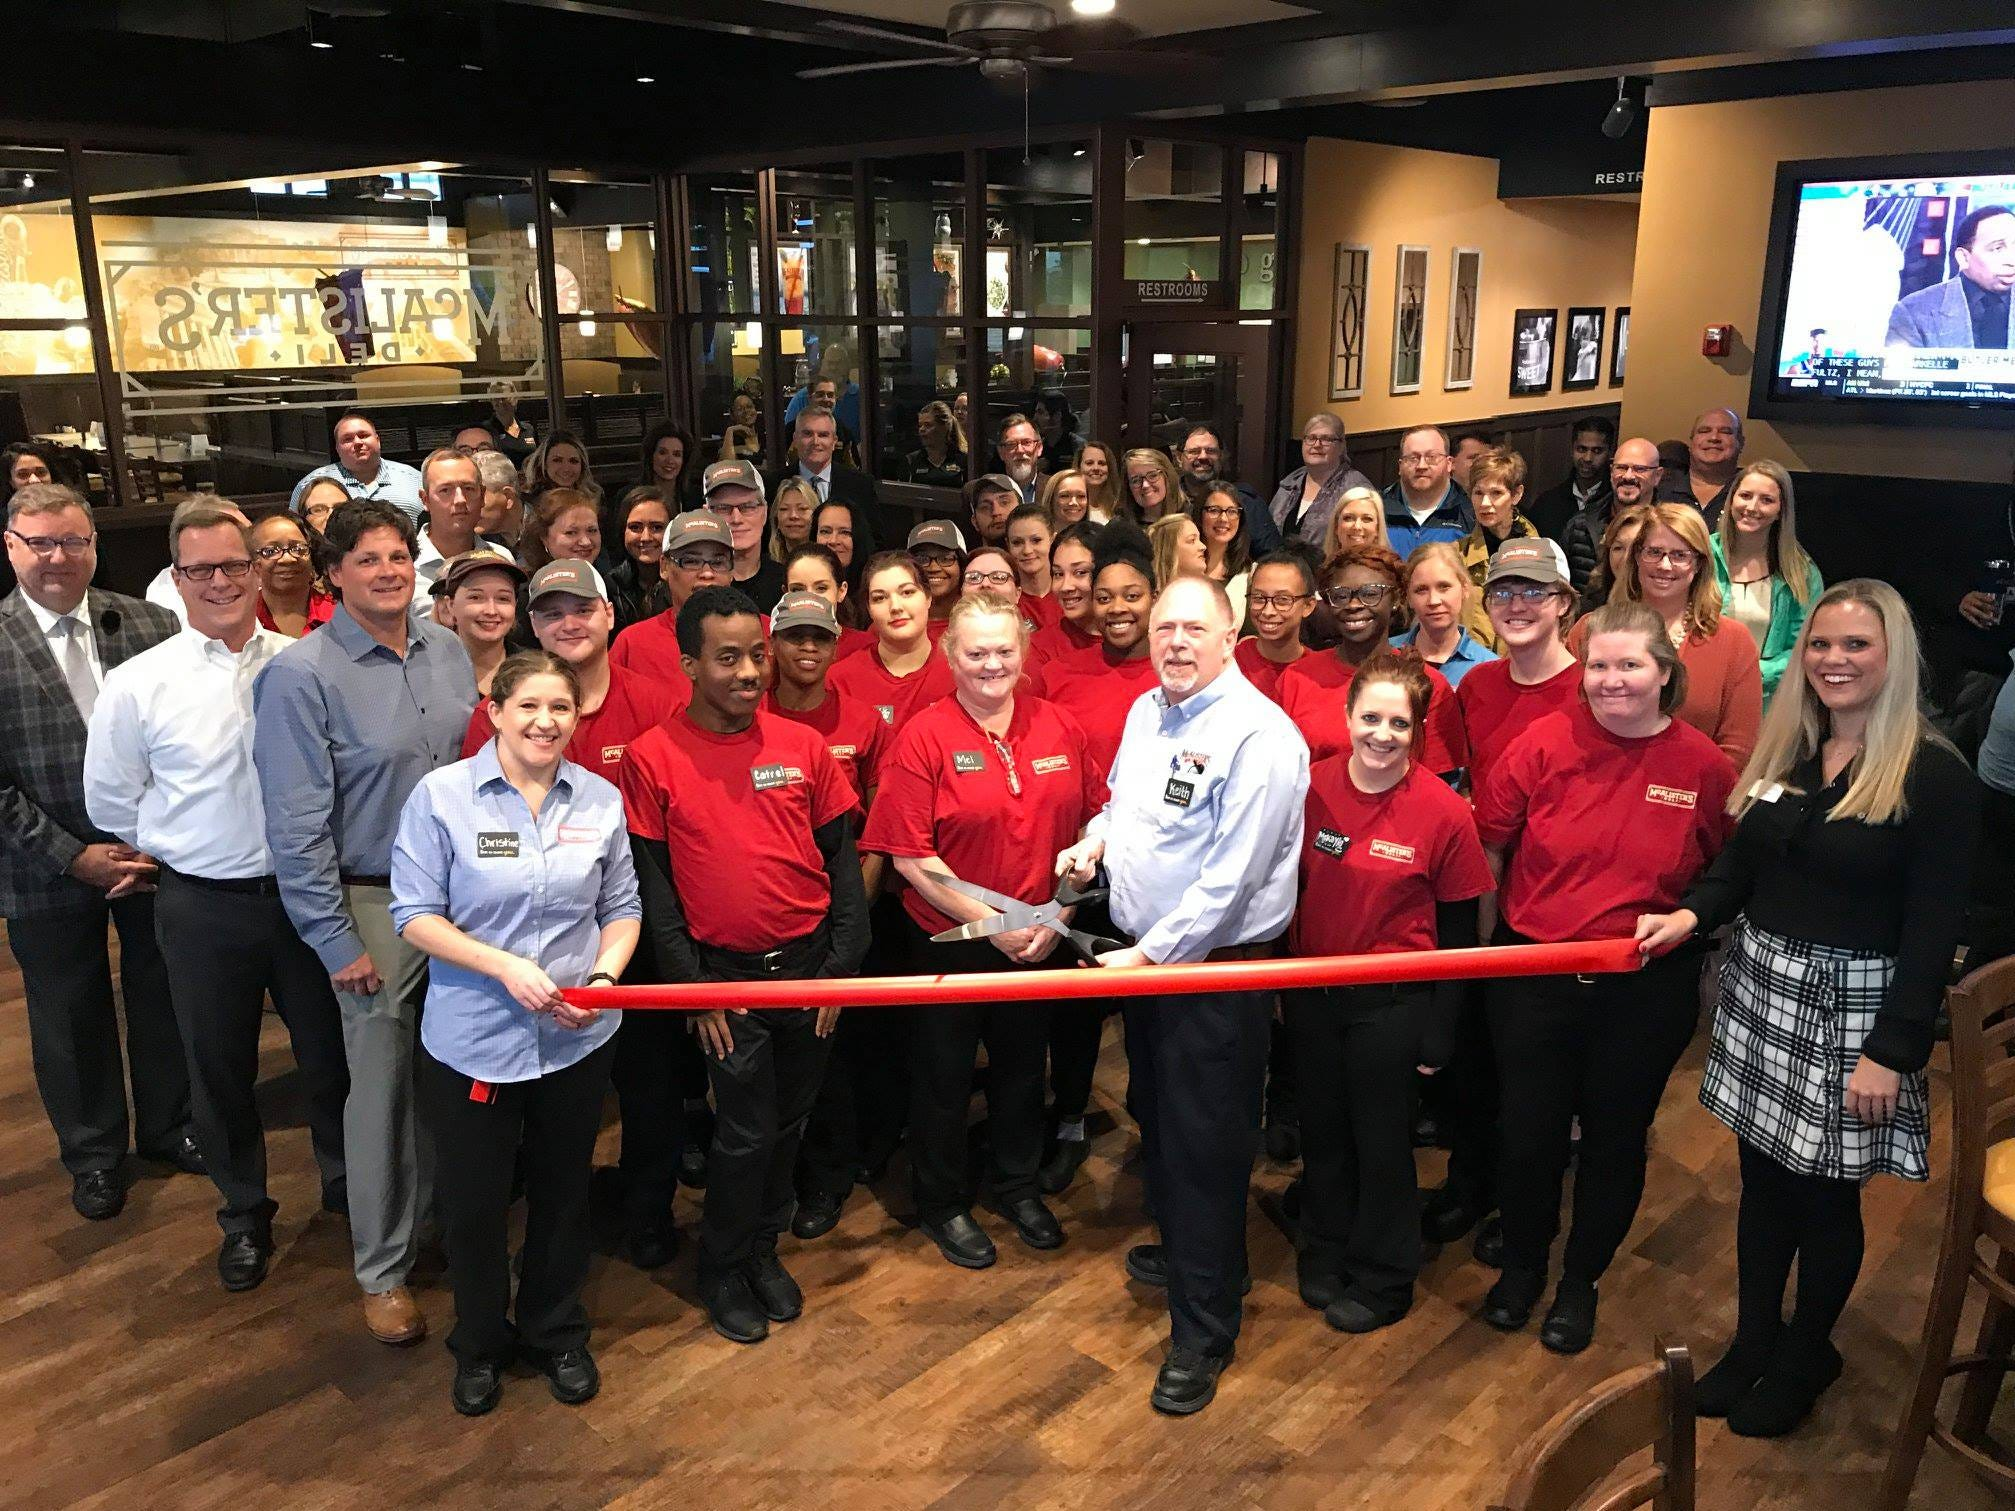 McAlister's Deli opened its second location in Murfreesboro at 2537 Medical Center Parkway.